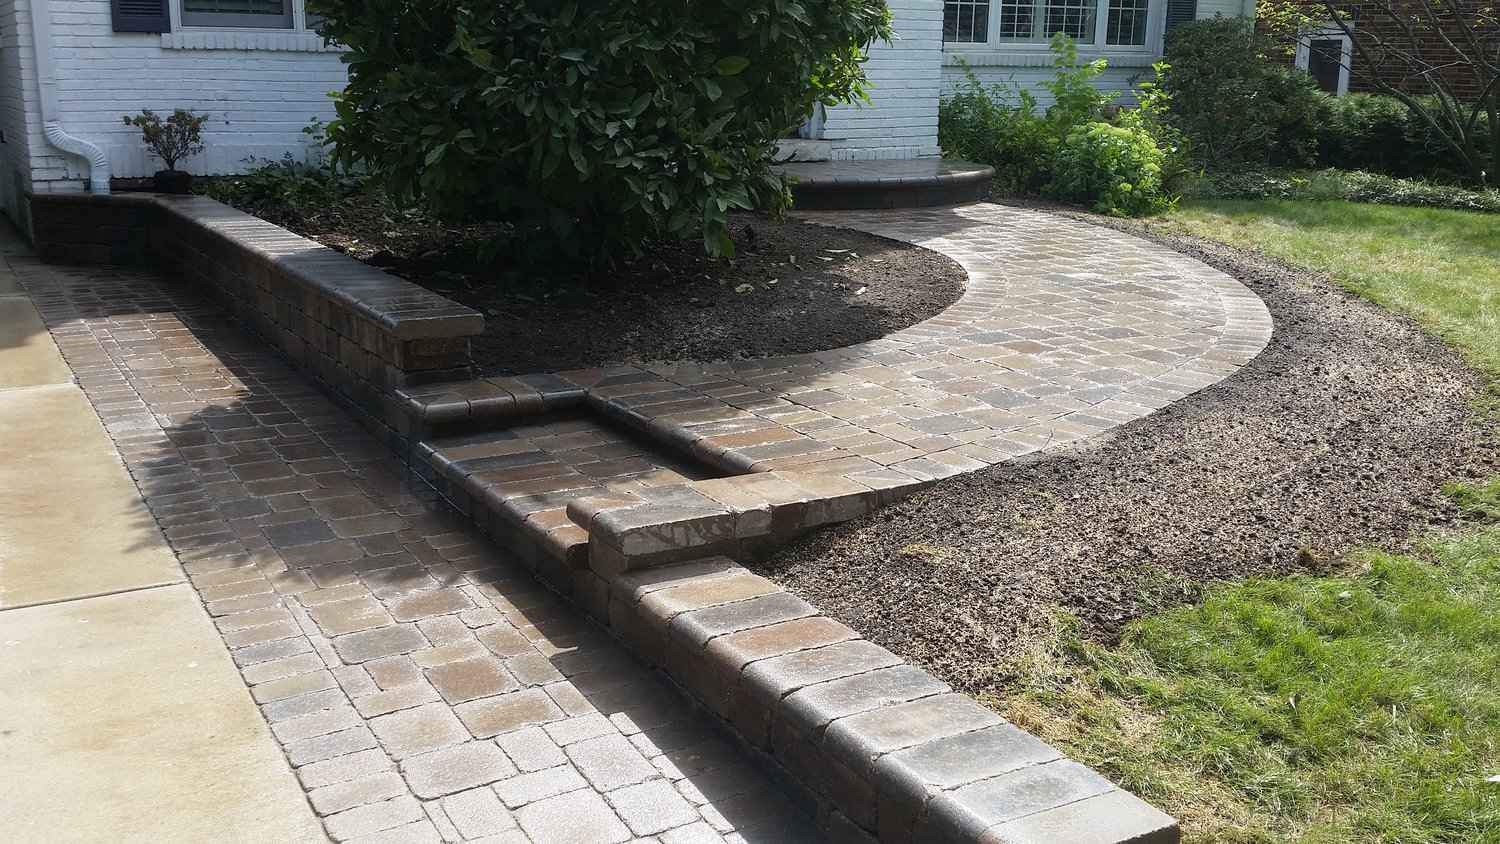 Garland-Richardson TX Landscape Designs & Outdoor Living Areas-We offer Landscape Design, Outdoor Patios & Pergolas, Outdoor Living Spaces, Stonescapes, Residential & Commercial Landscaping, Irrigation Installation & Repairs, Drainage Systems, Landscape Lighting, Outdoor Living Spaces, Tree Service, Lawn Service, and more.